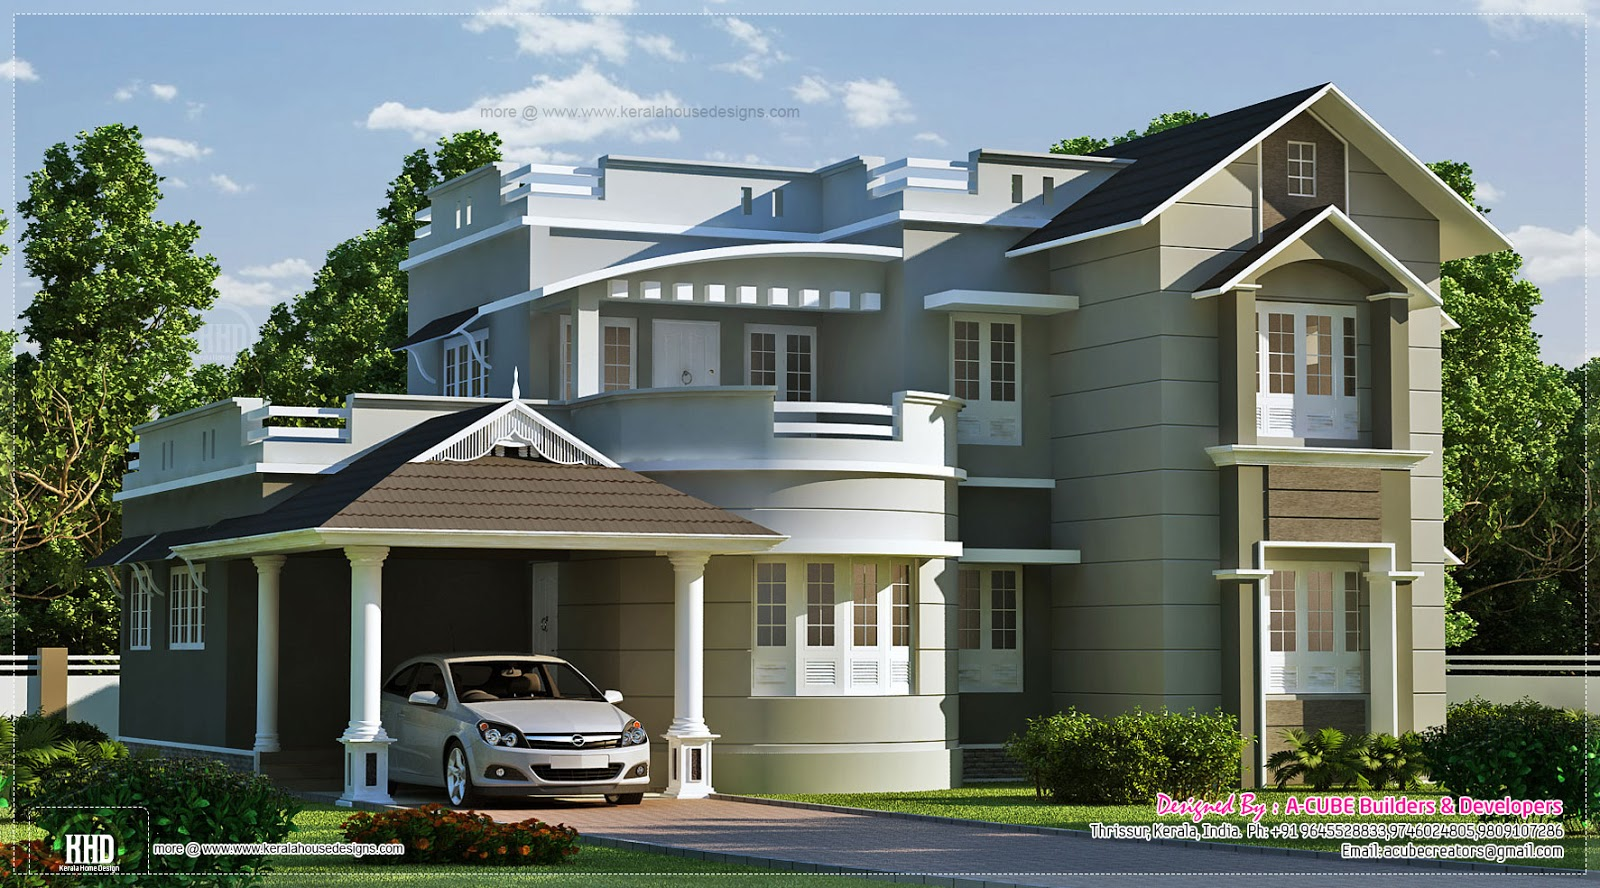 New style home exterior in 1800 sq.feet - Kerala home ...